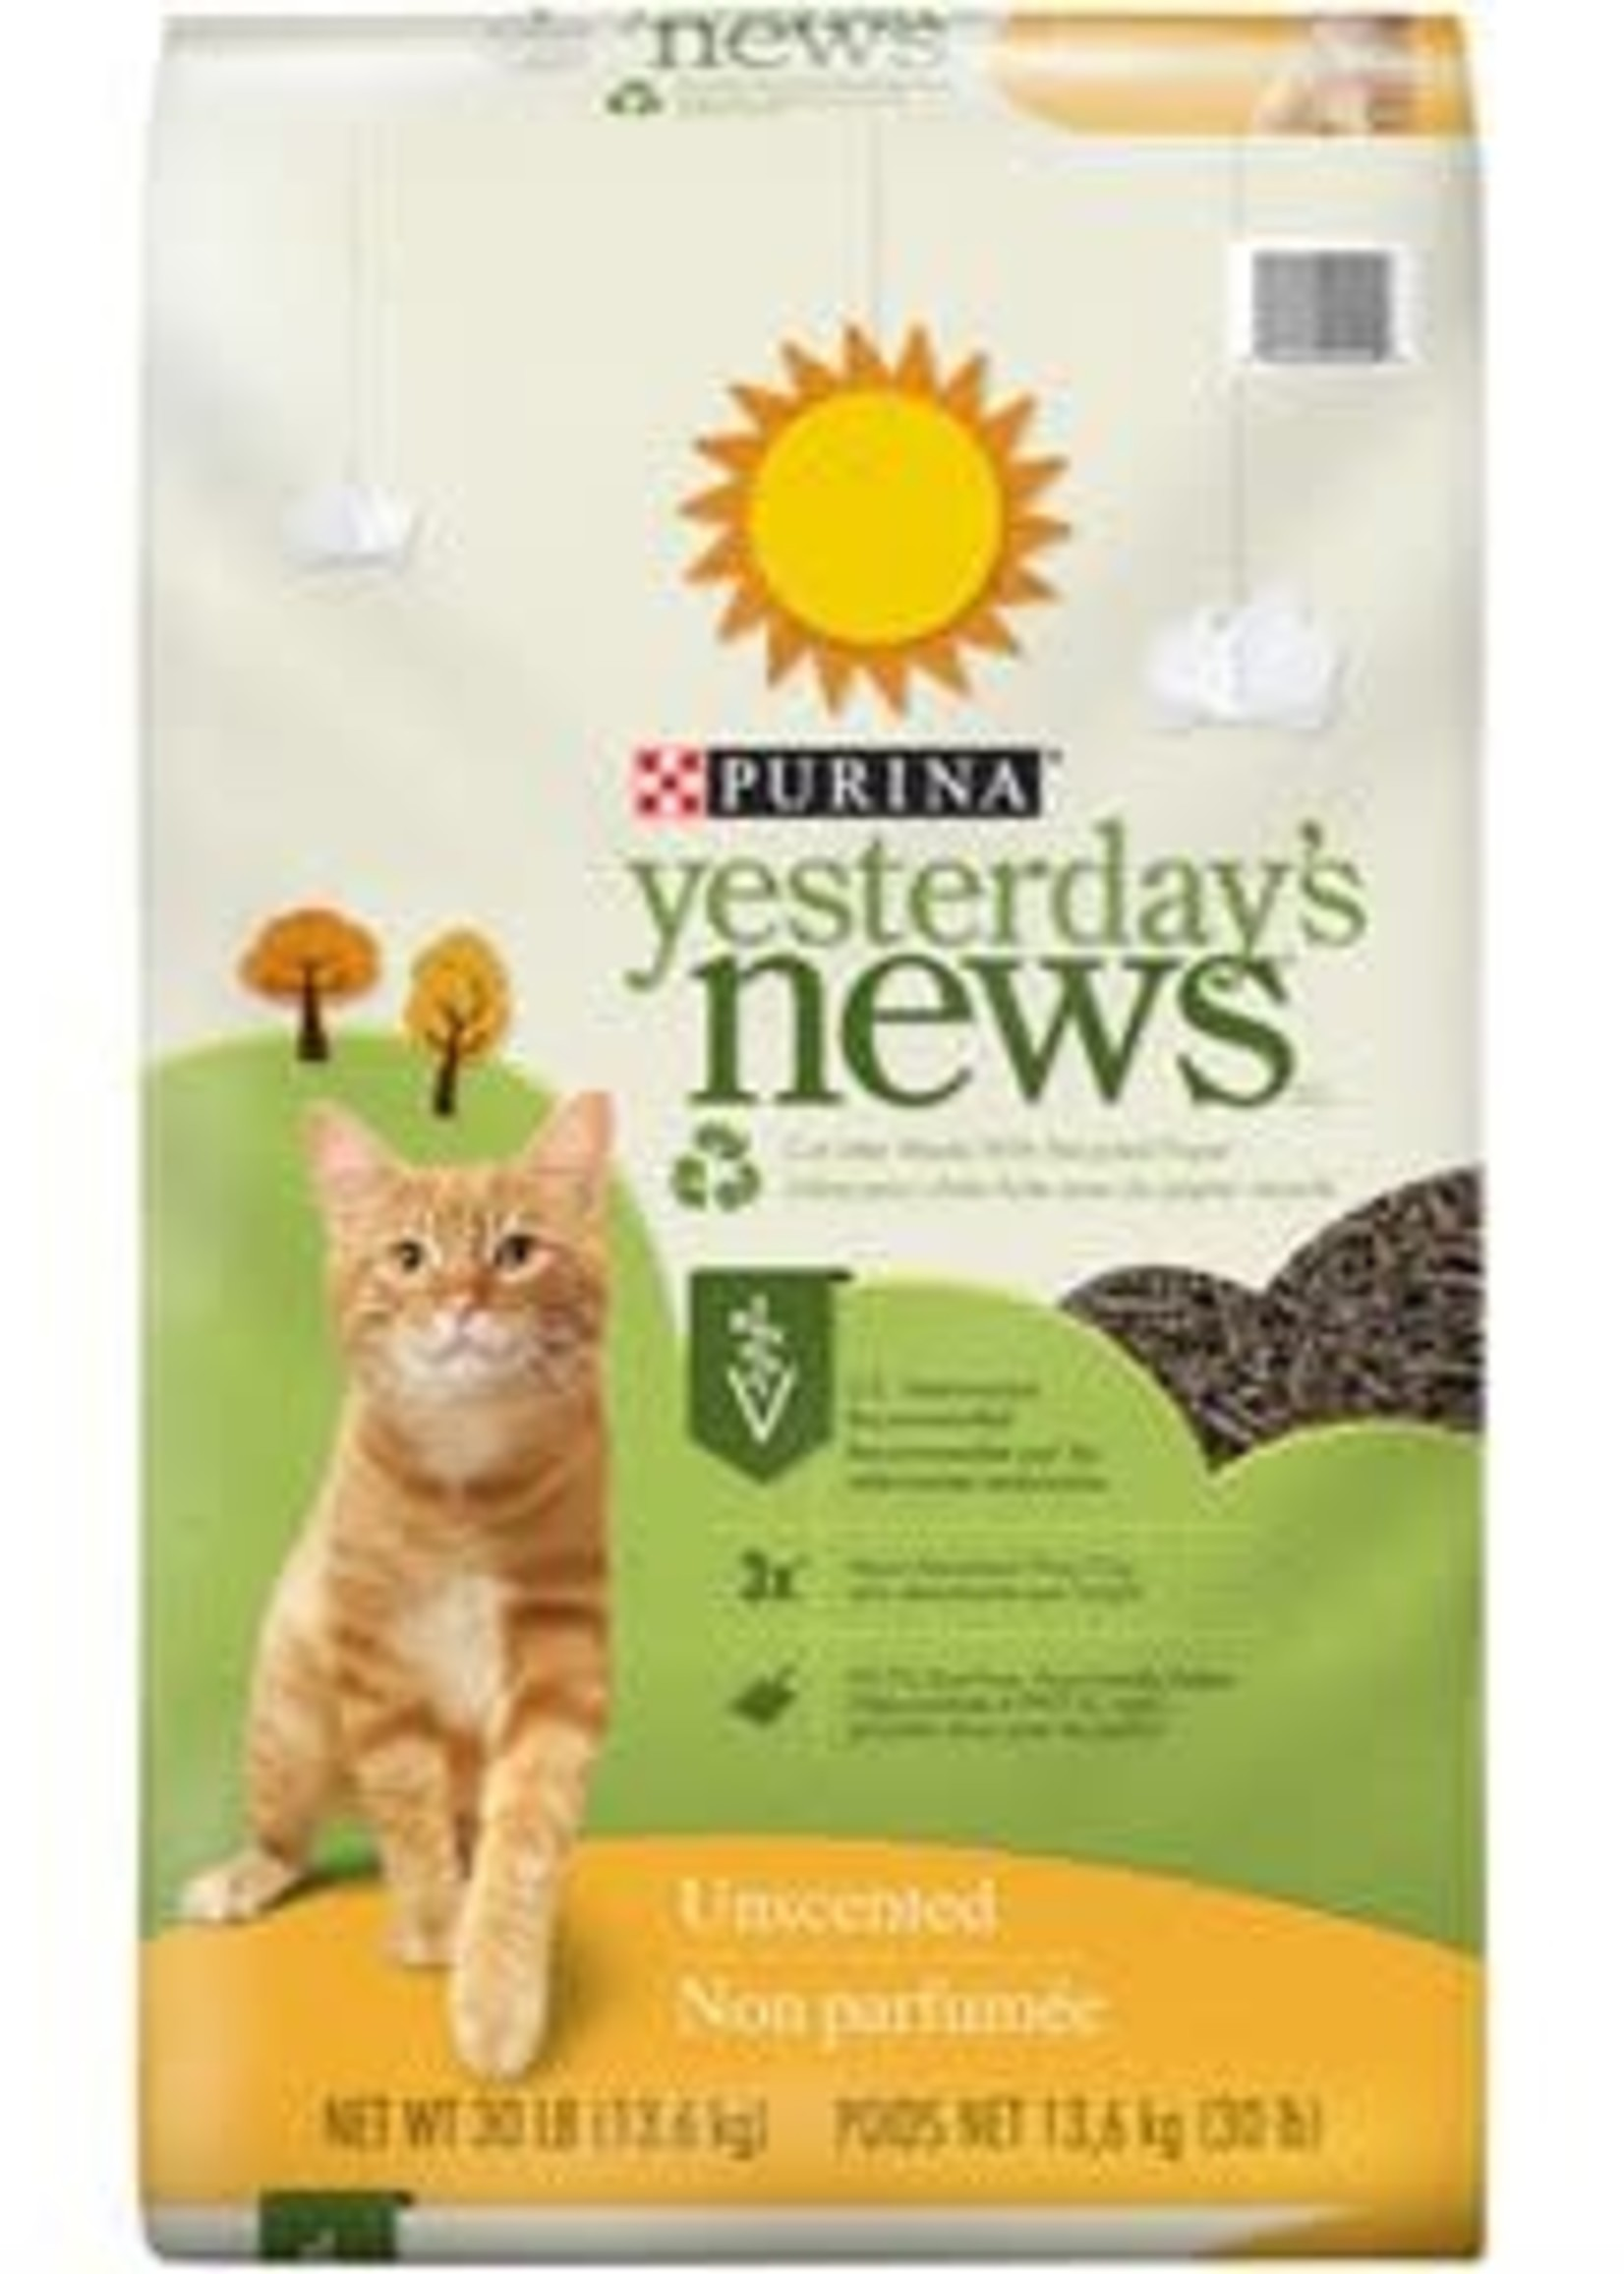 Yesterday's News® Yesterday's News Recycled Paper Litter 30lbs